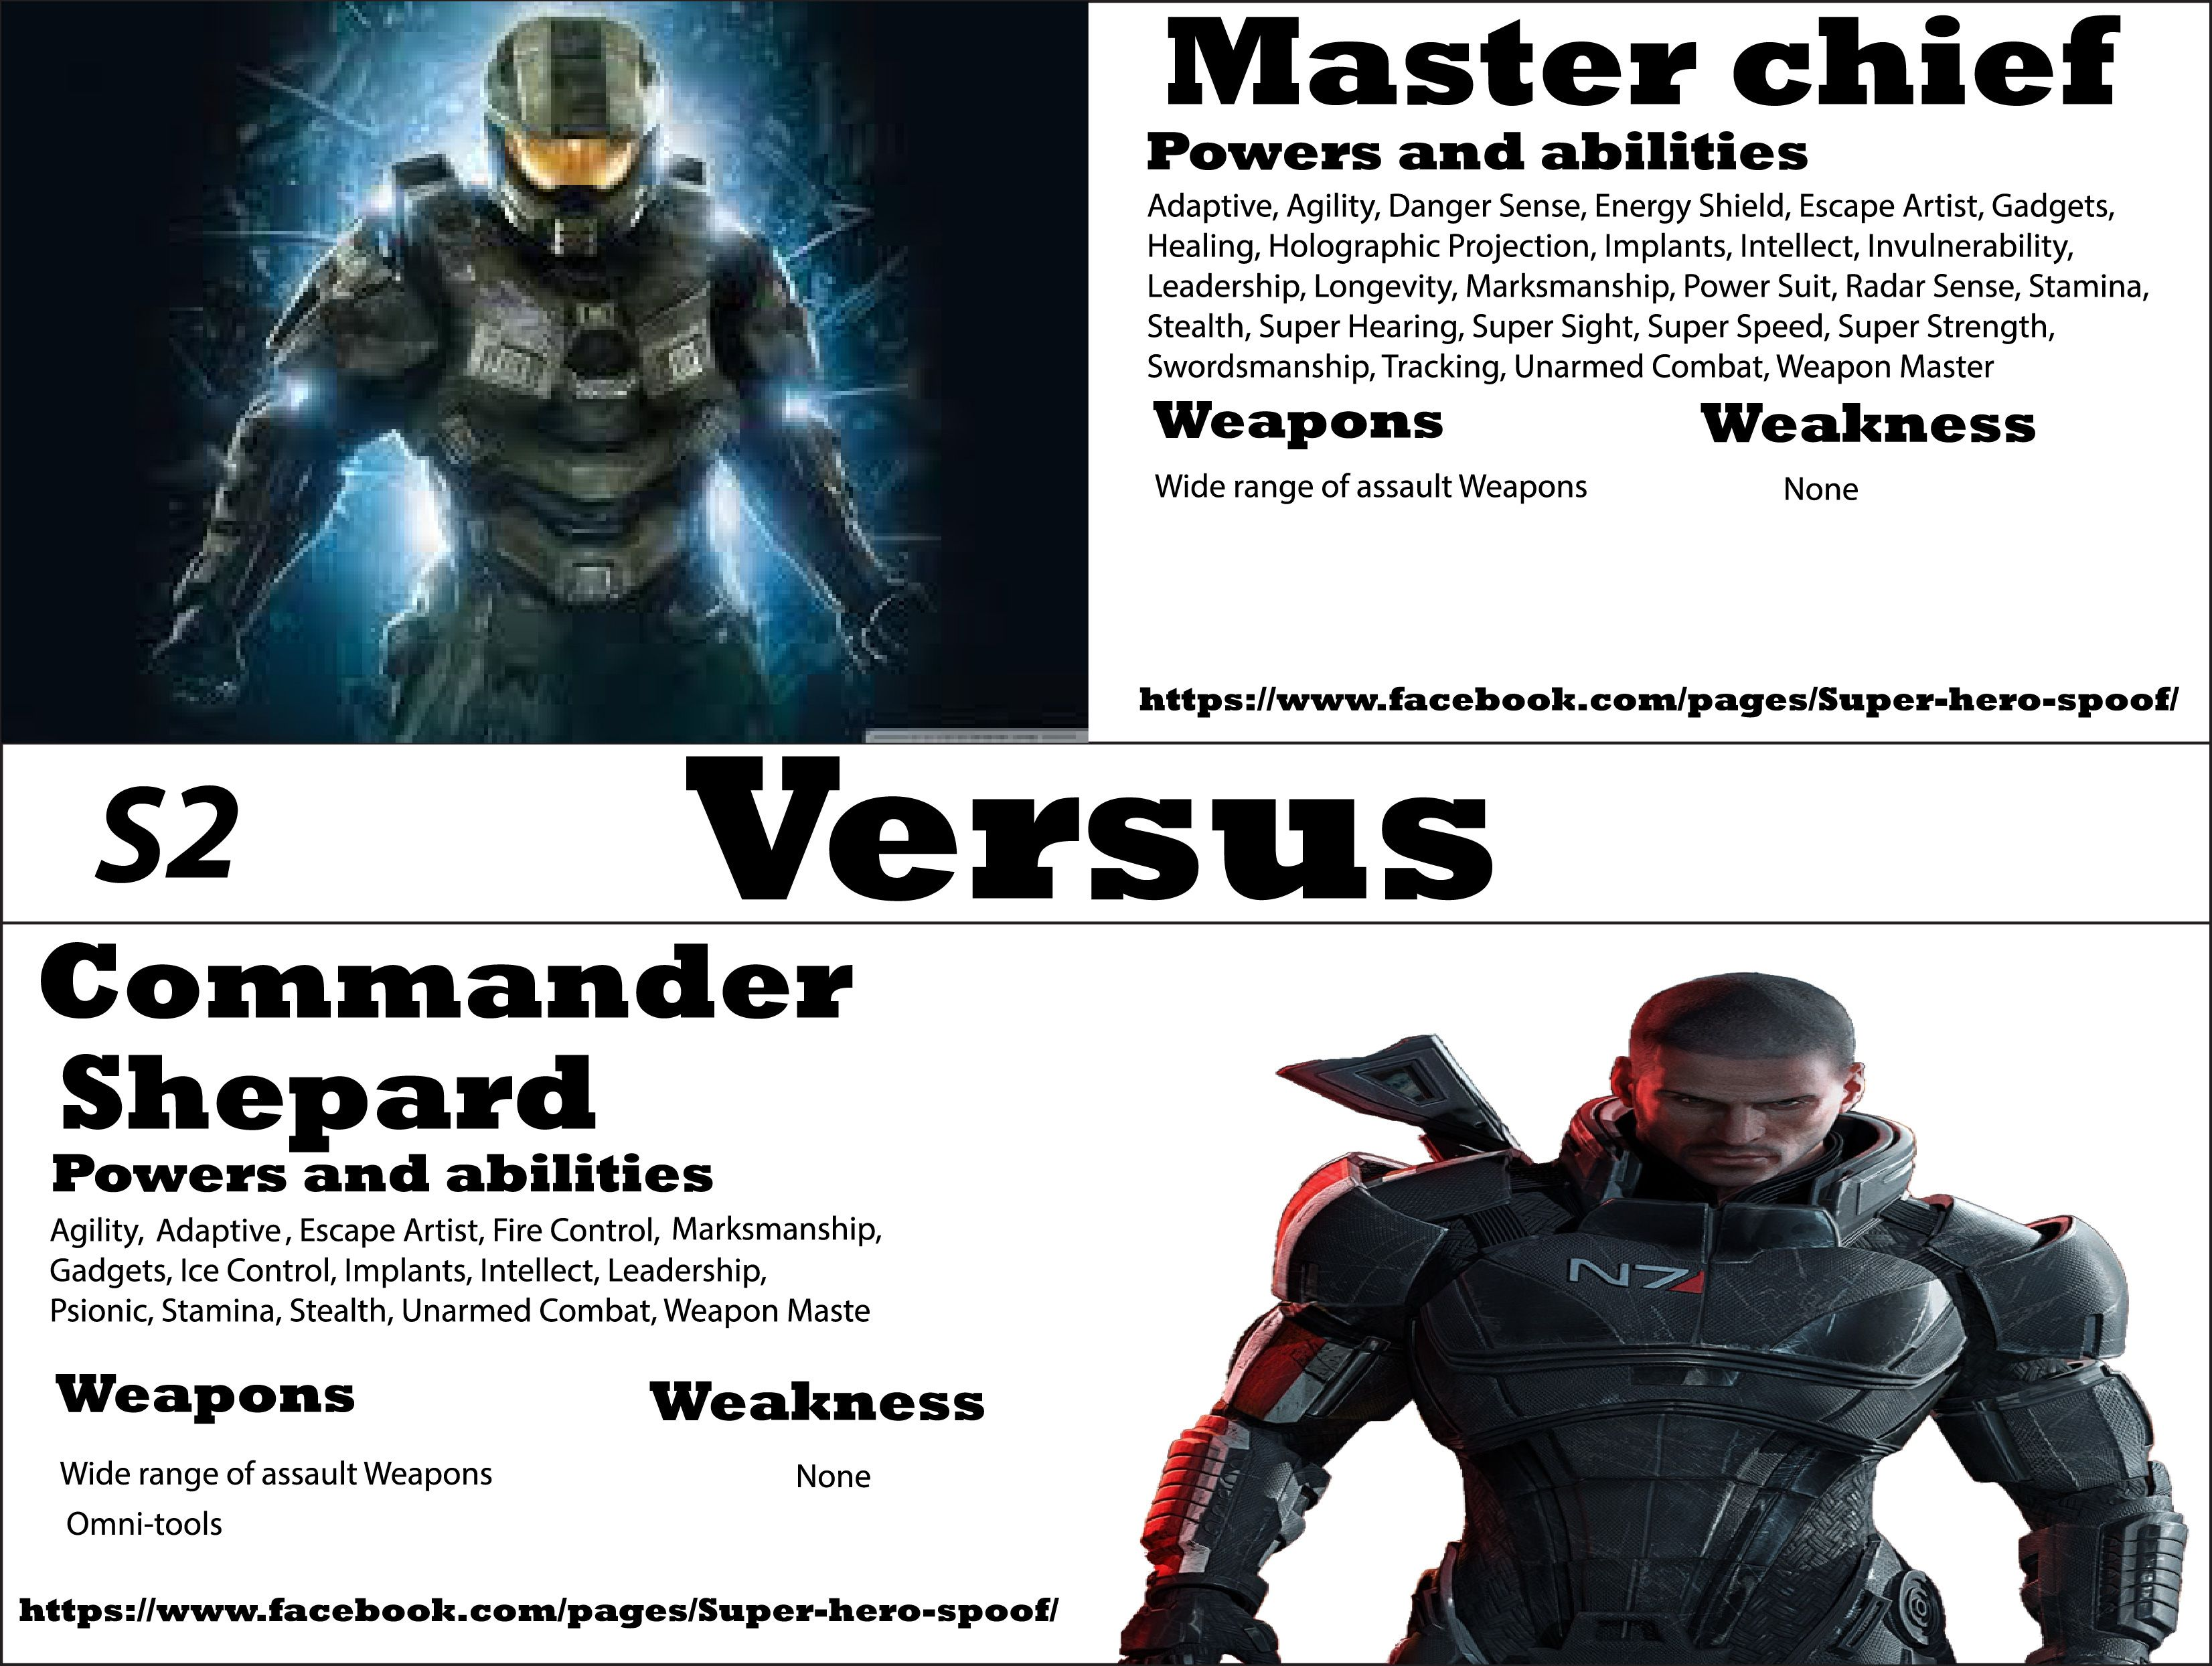 master chief vs commander shepard who will win and why powers master chief vs commander shepard who will win and why powers abilities weaknesses and weapons are posted by super hero spoof